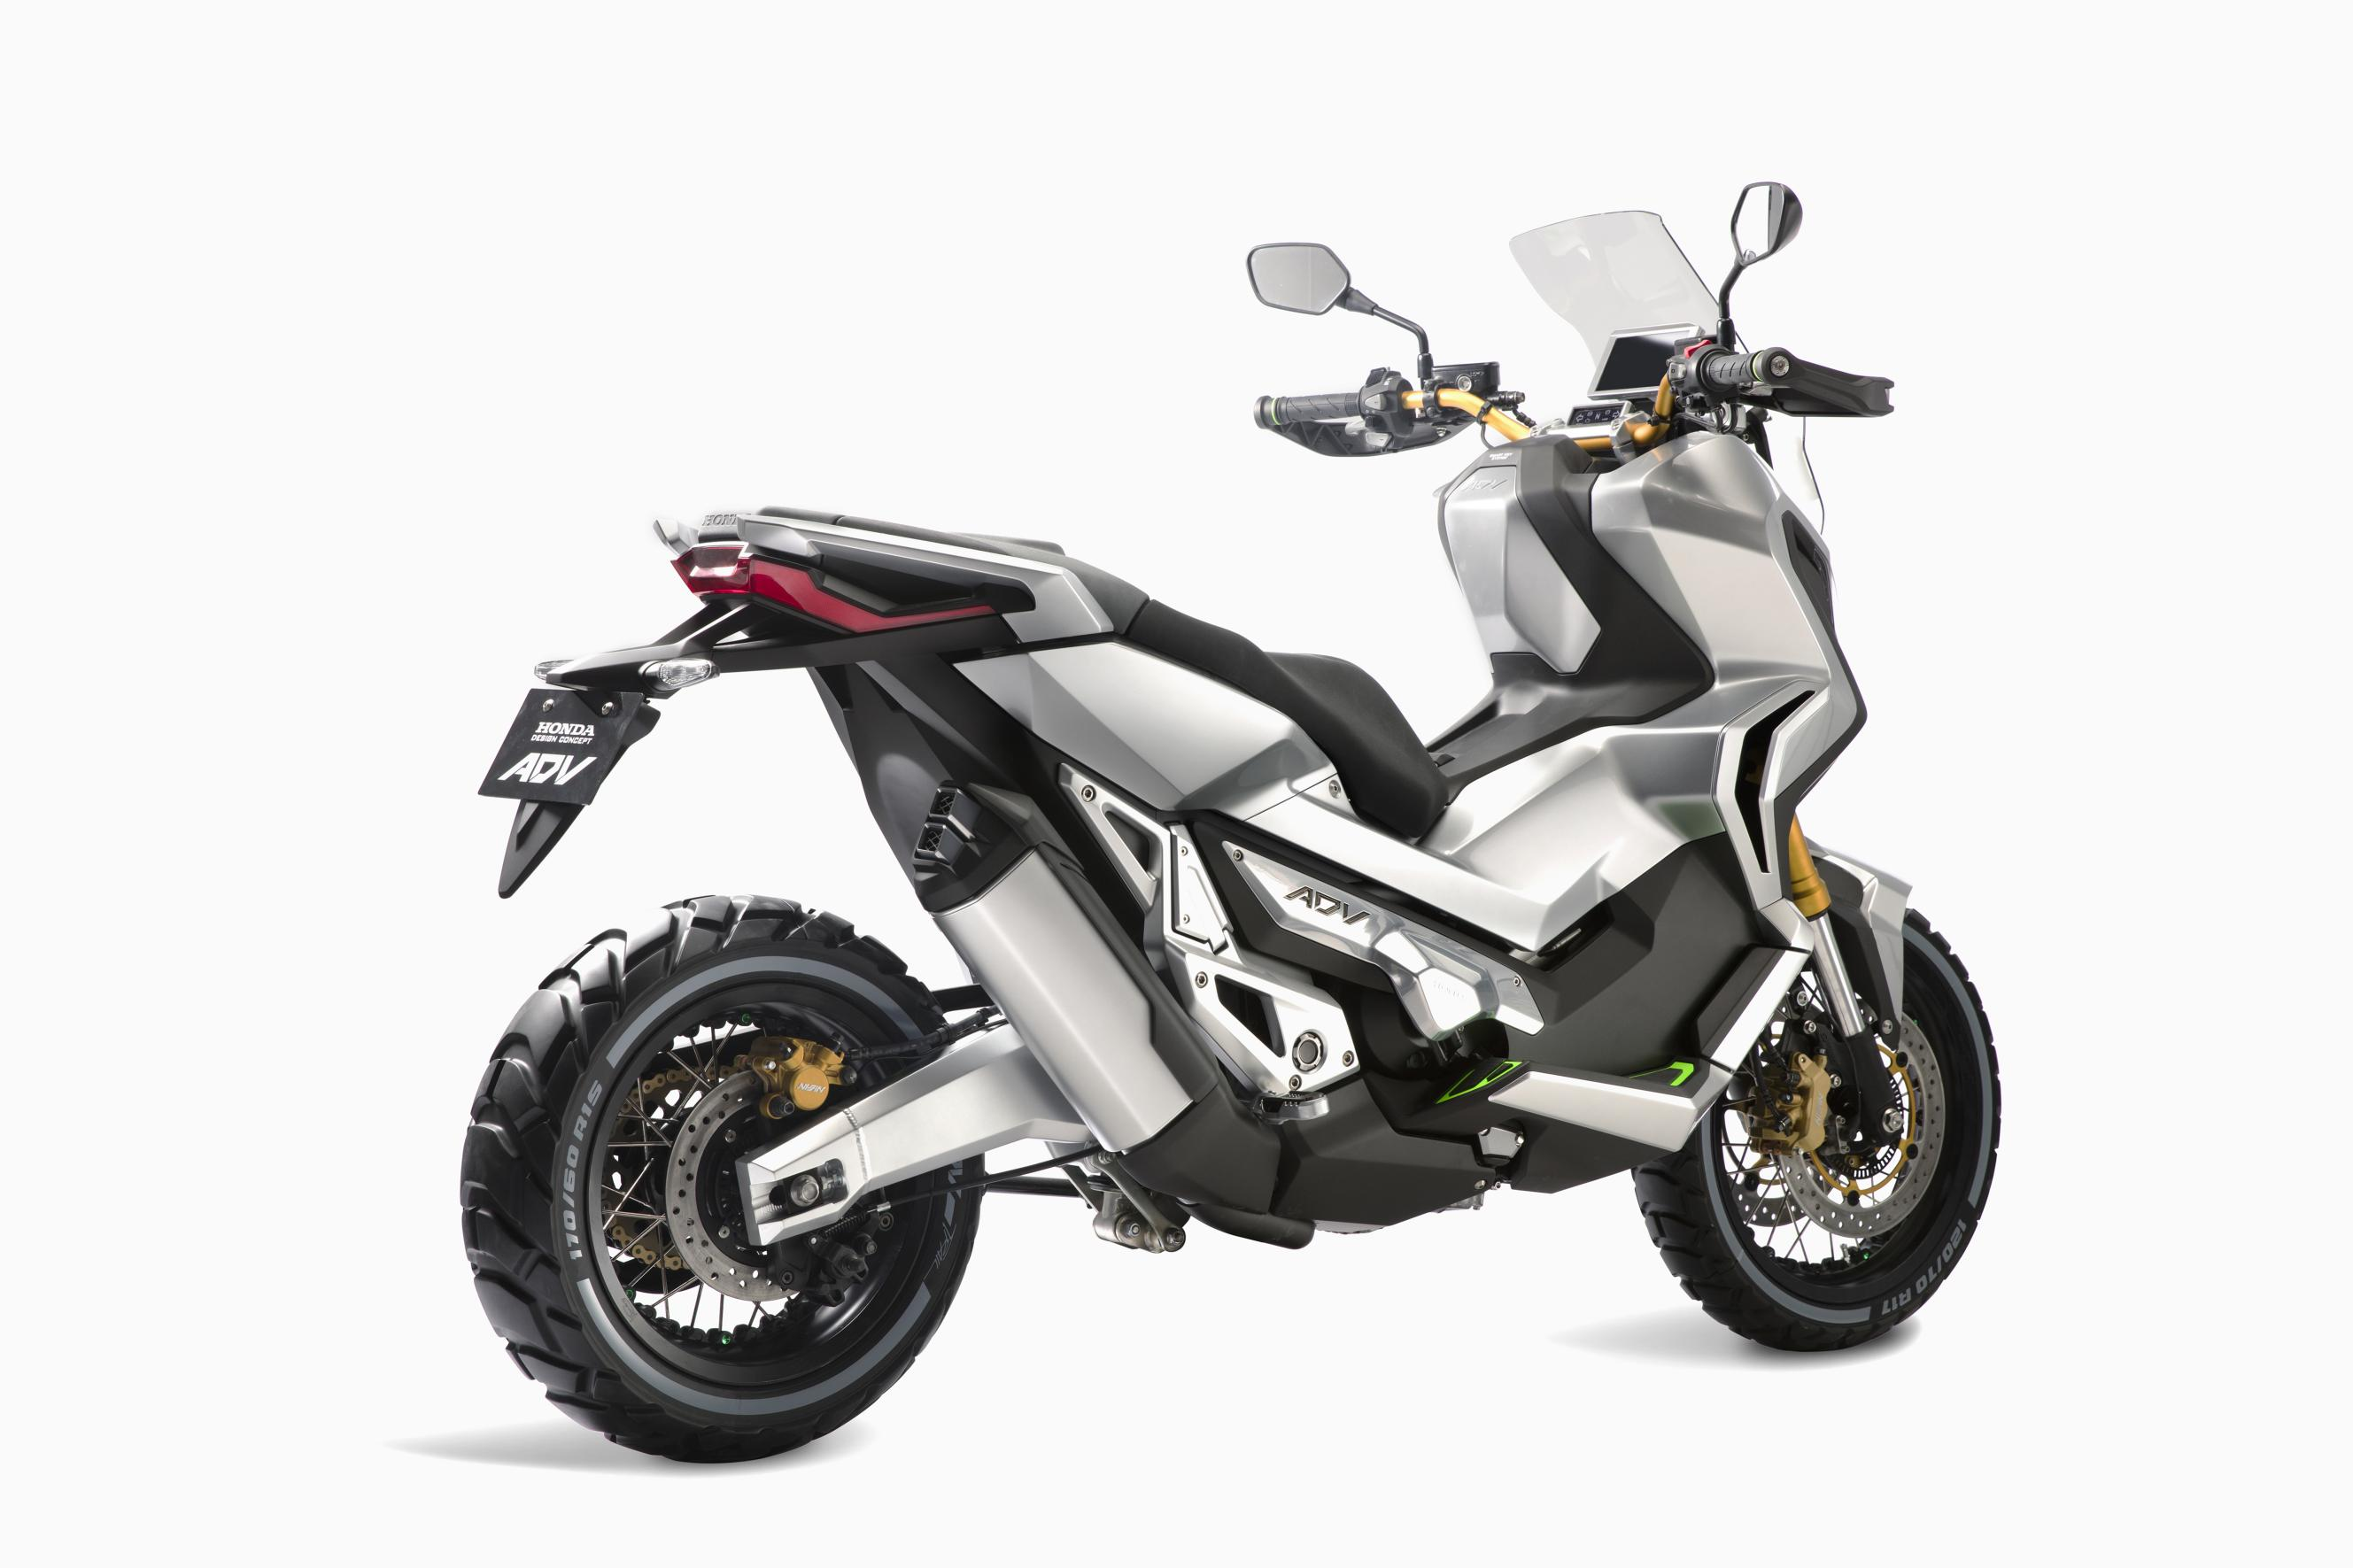 Honda Motorcycle Scooter 2017 Eicma 2015 Honda City Adventure Concept Previews Future